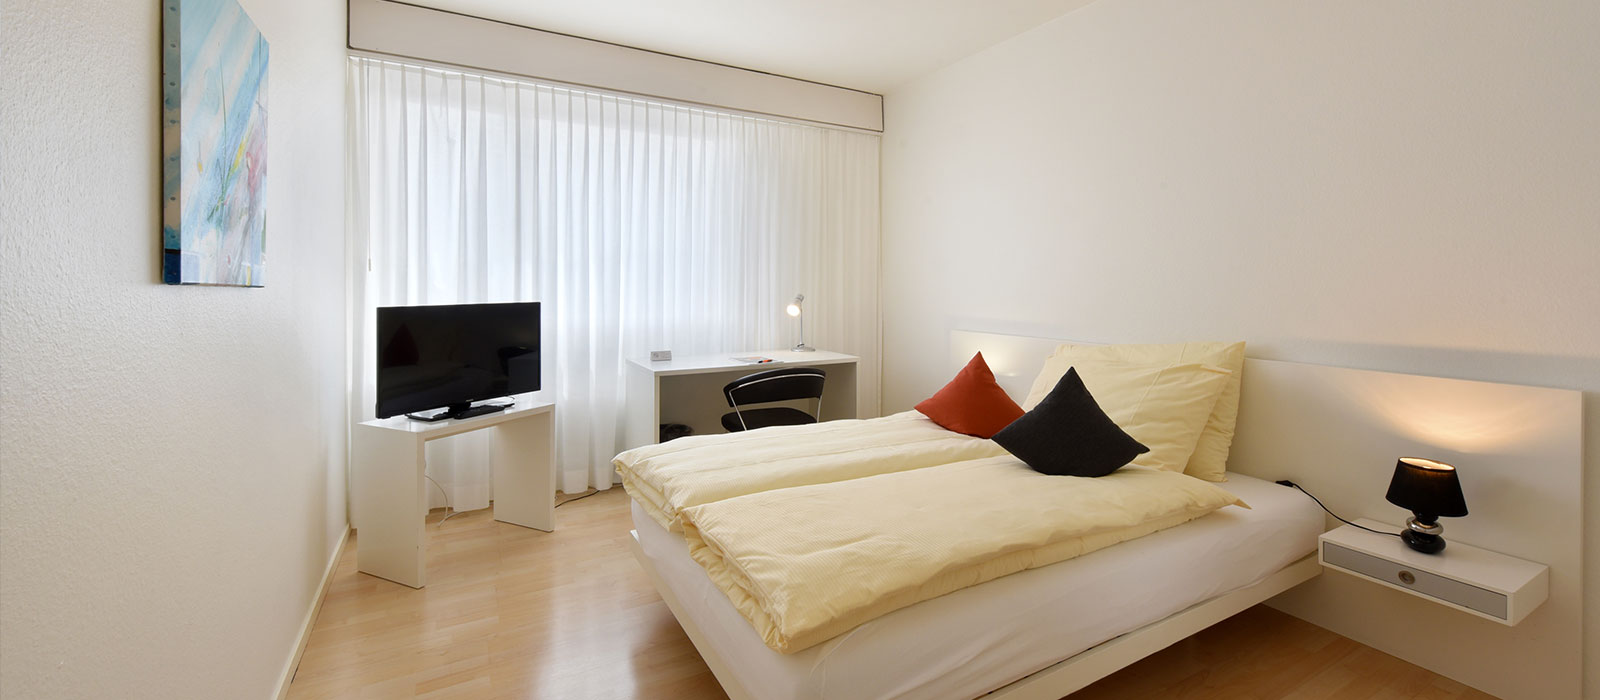 APALIVING Budgethotel Bâle Chambre Comfort